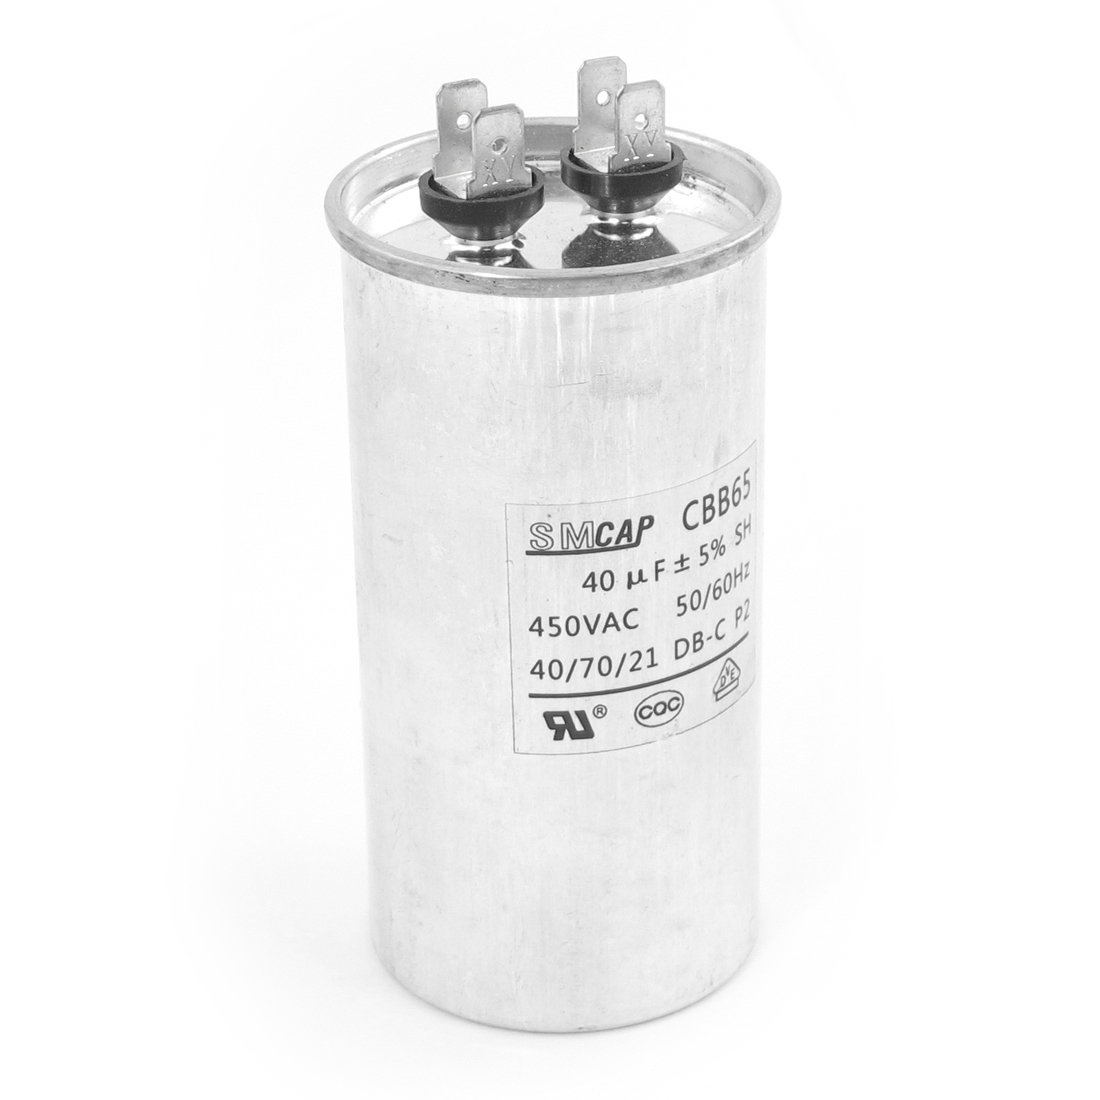 Air Conditioner CBB65 40uF AC 450V Round Motor Run Capacitor